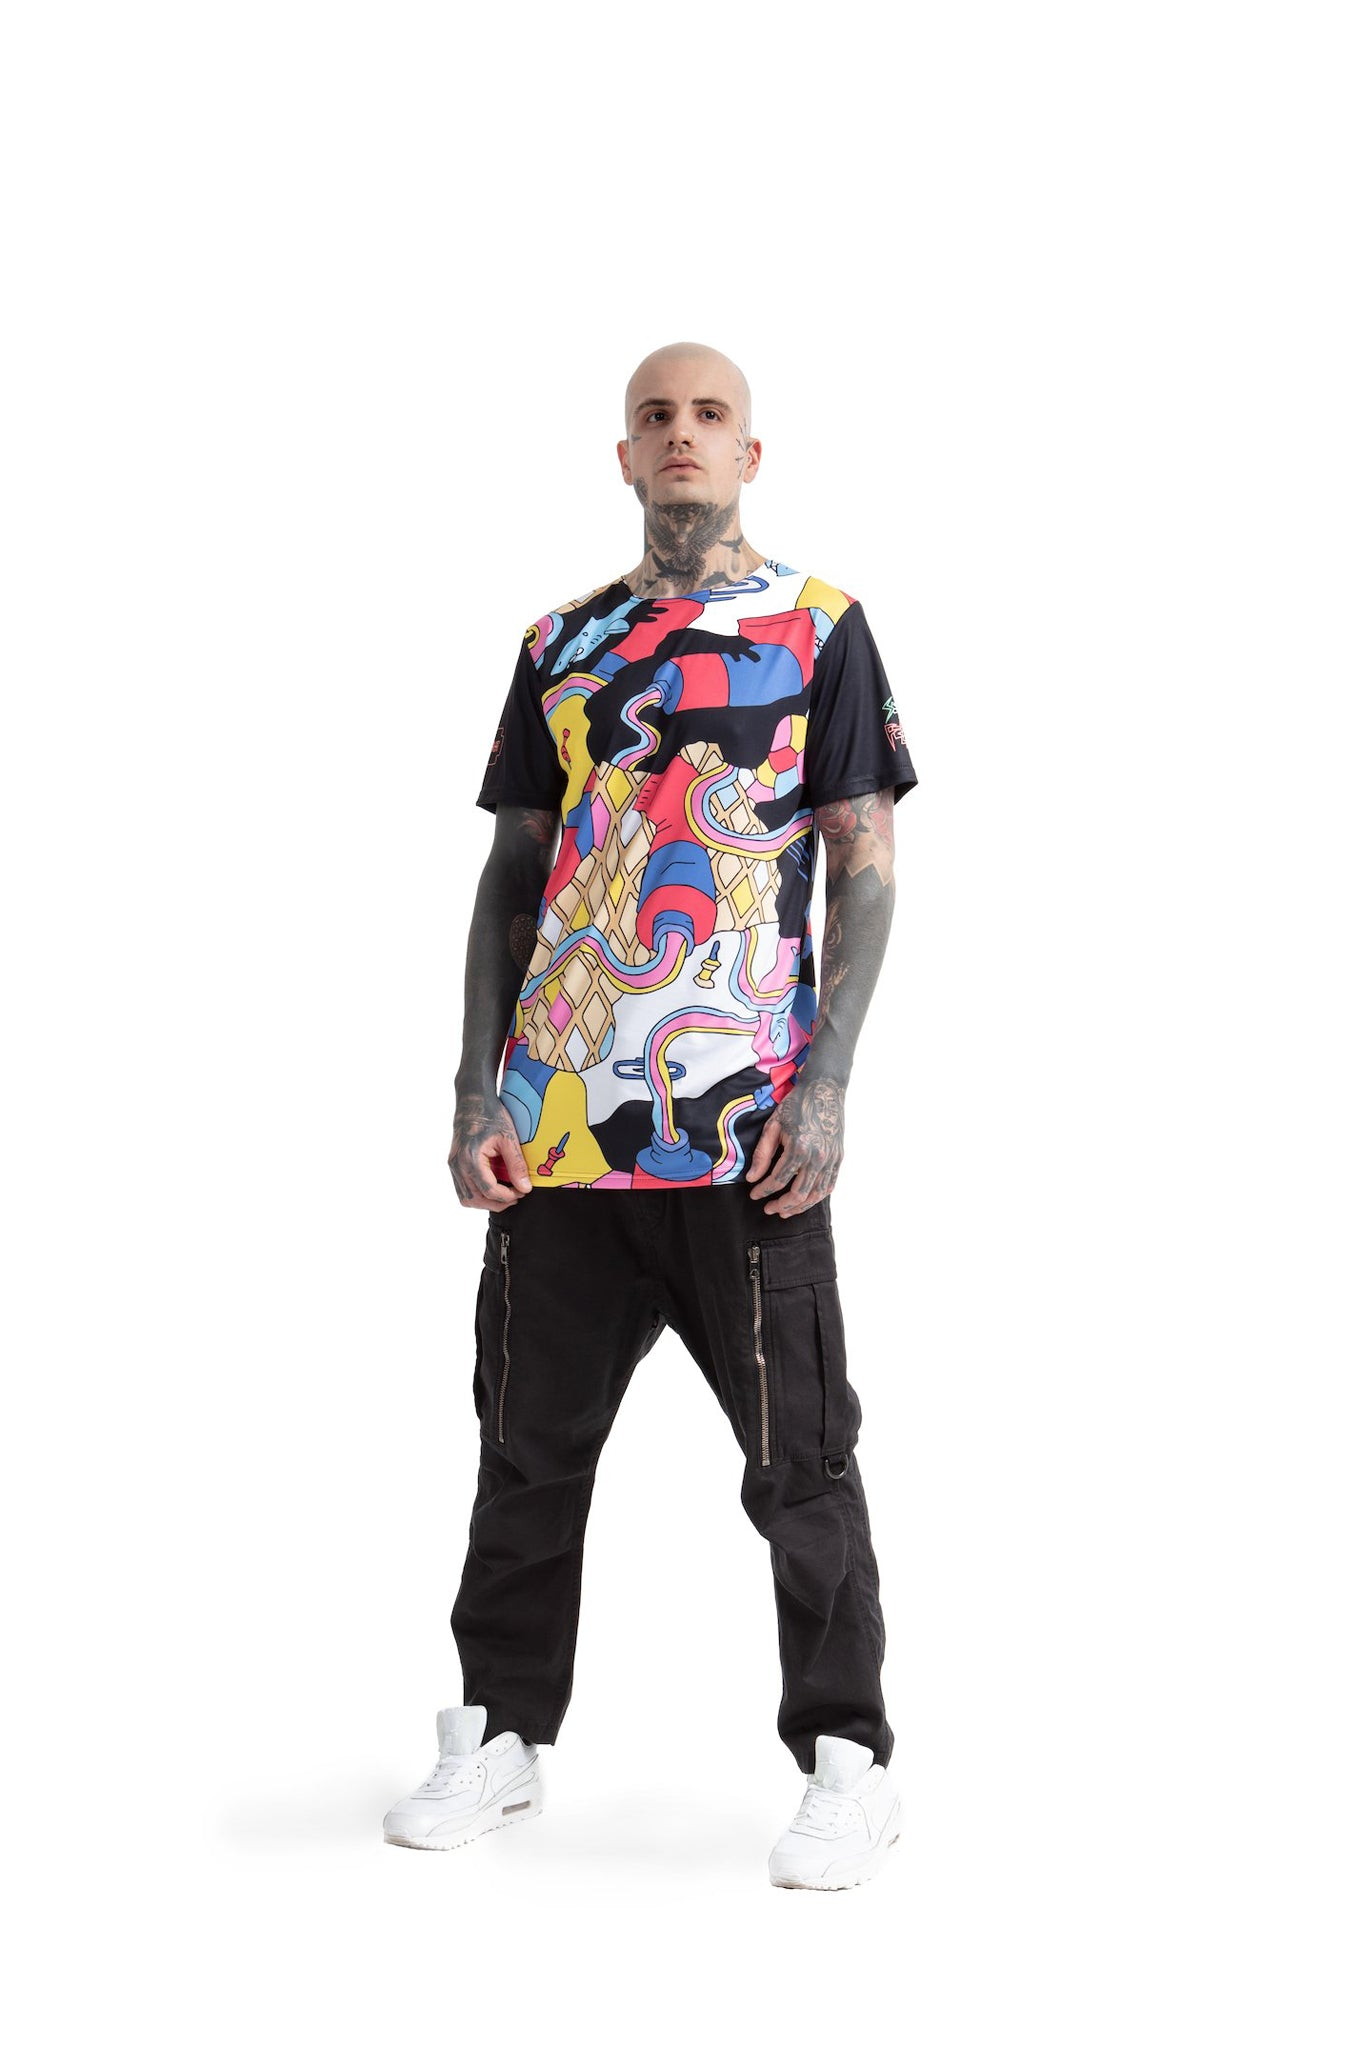 Full of paint - oversized T-shirt